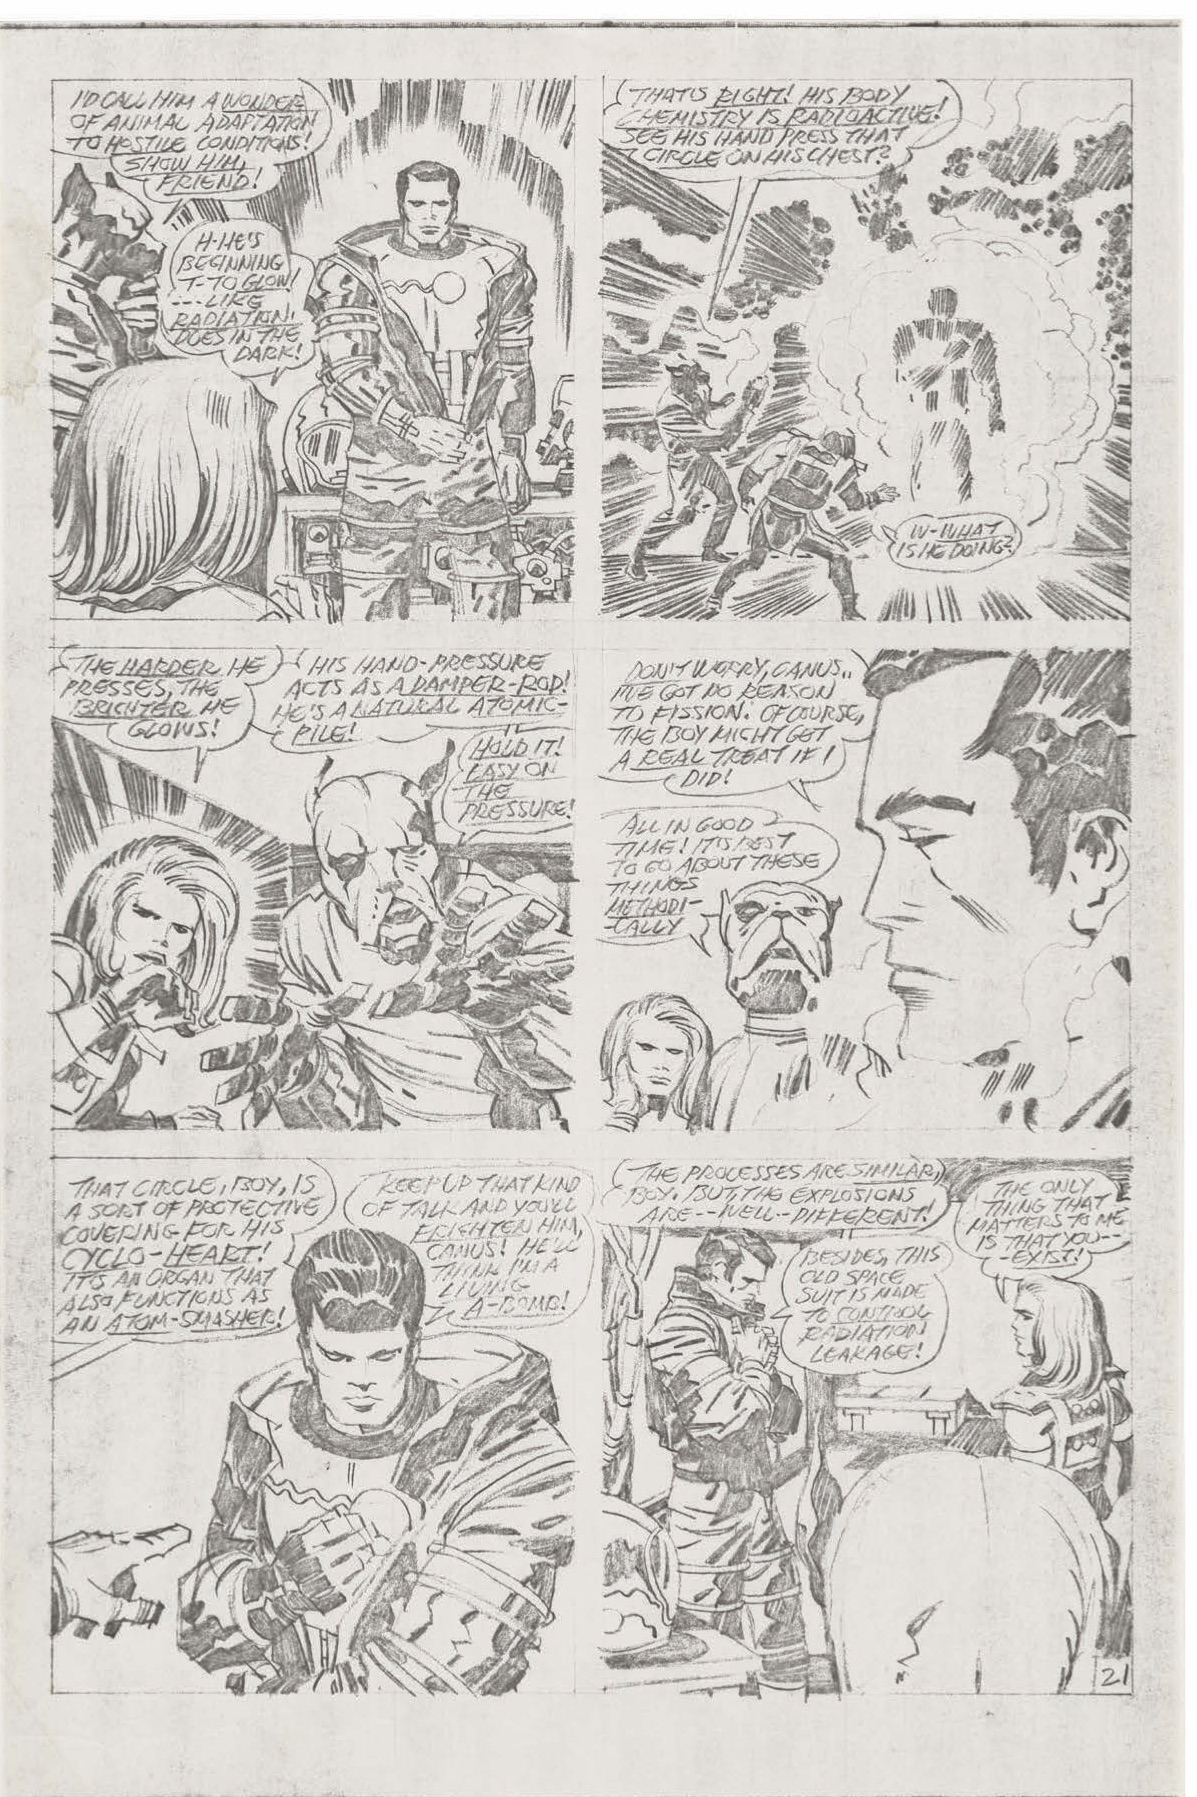 jackkirby_pencils_inks-lokaman3